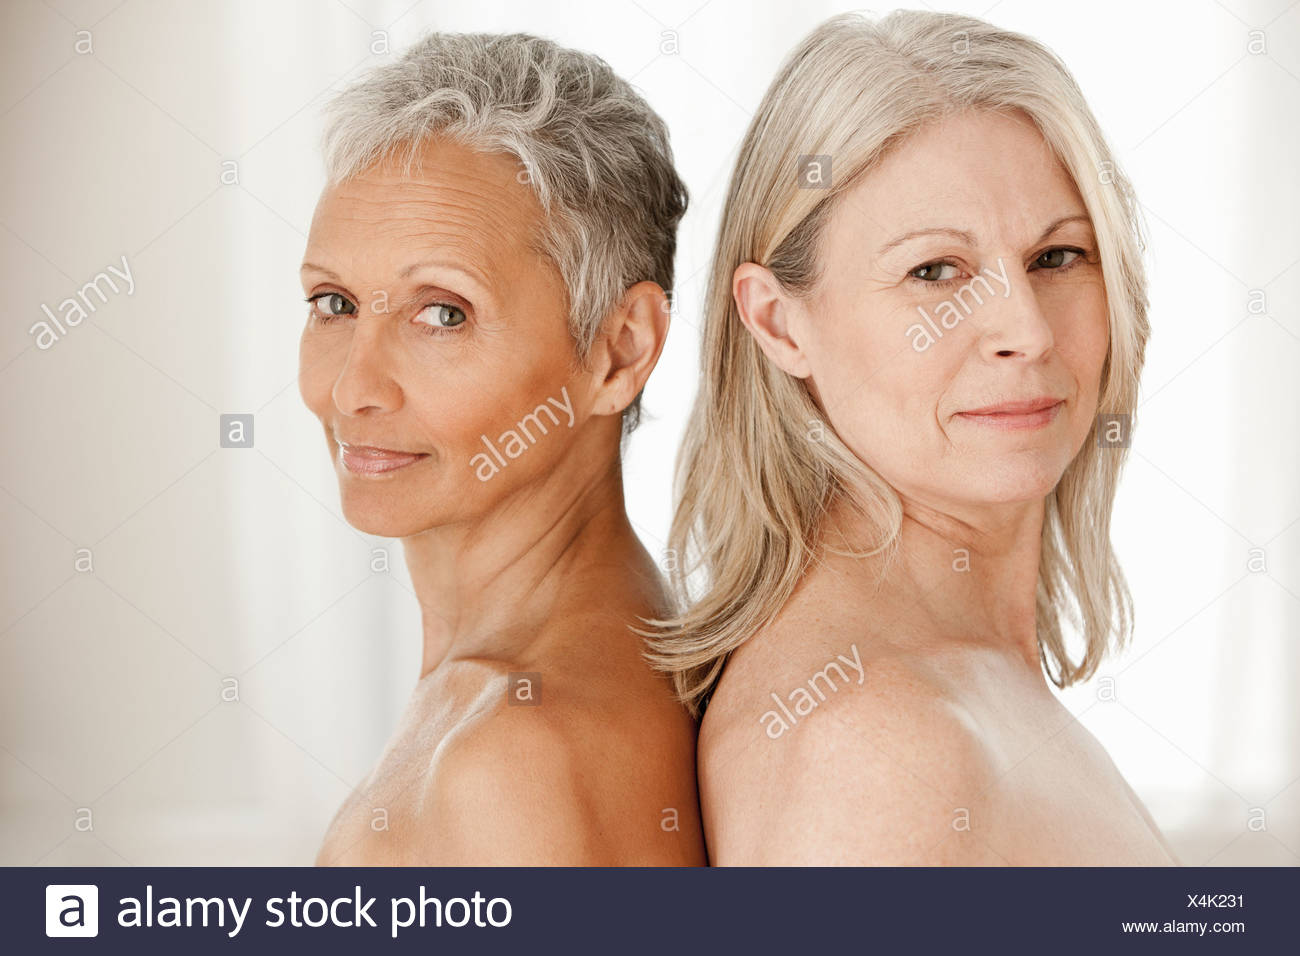 Portrait of senior and mature women - Stock Image